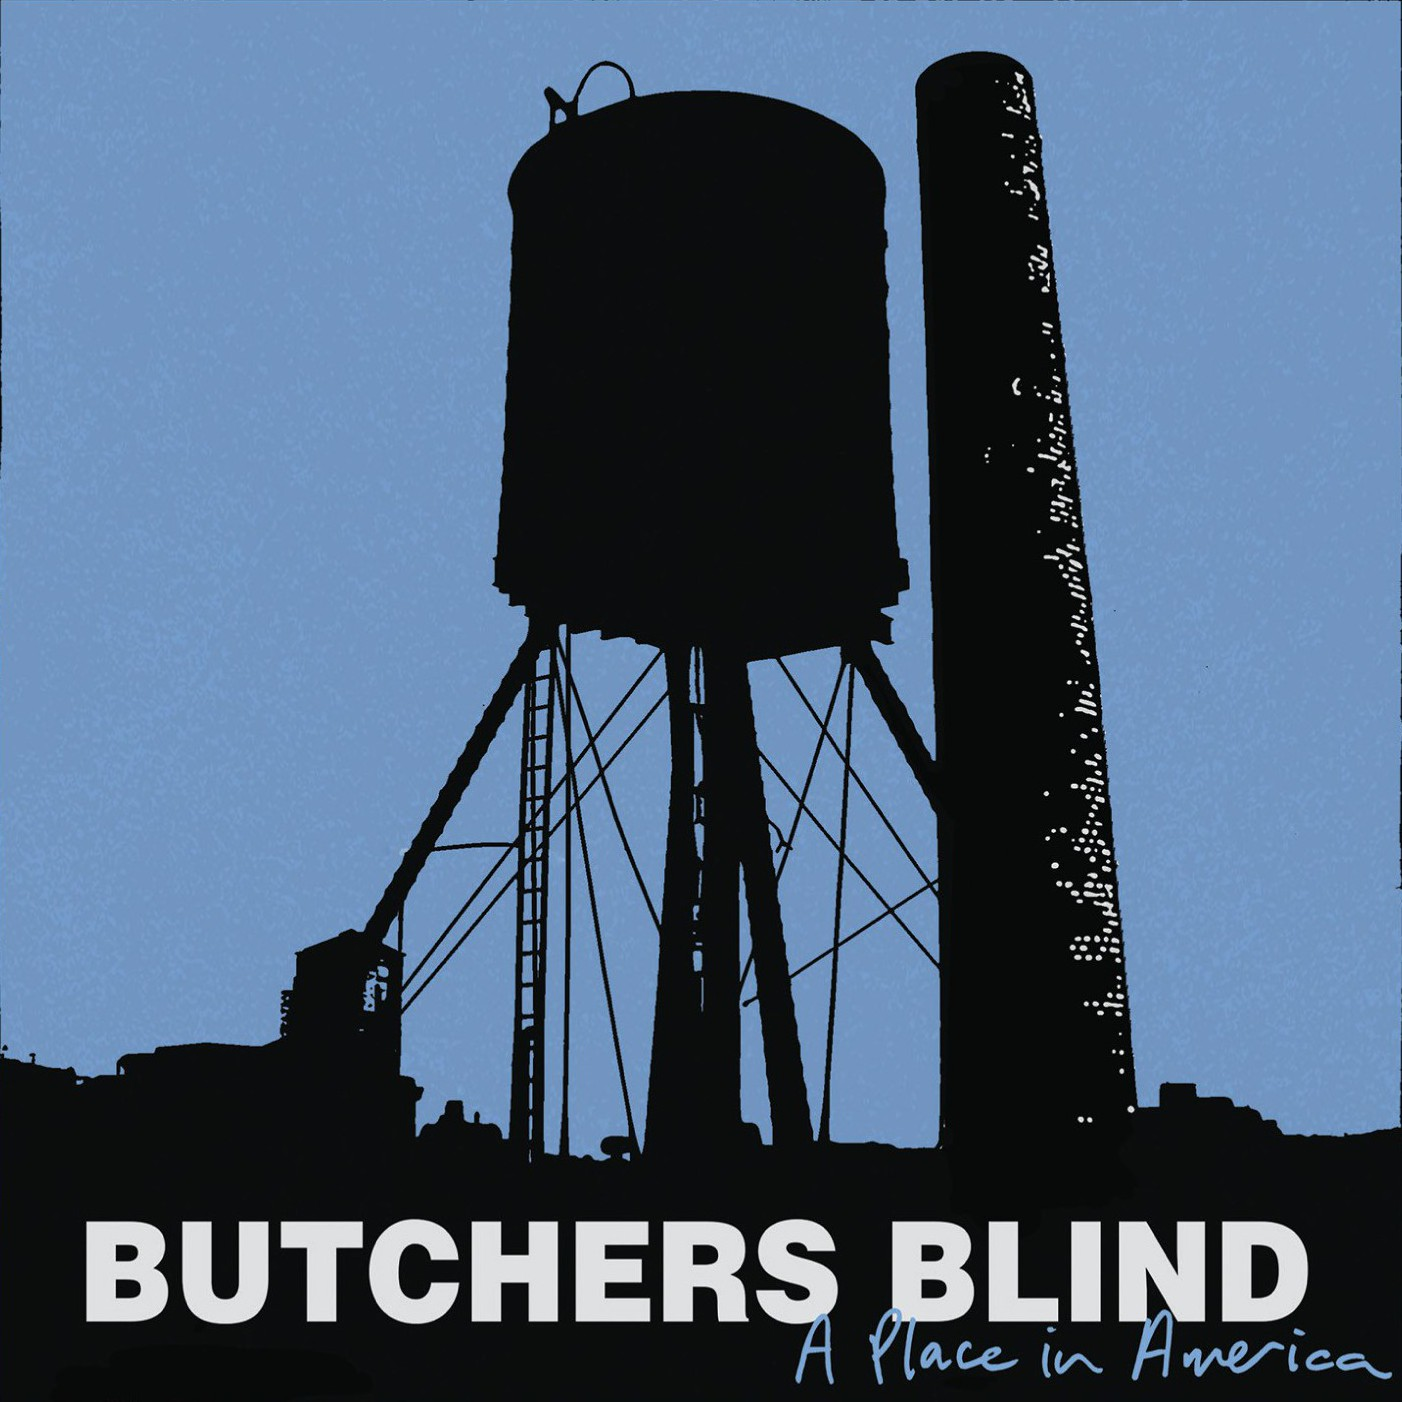 Butchers Blind Place in America LRG